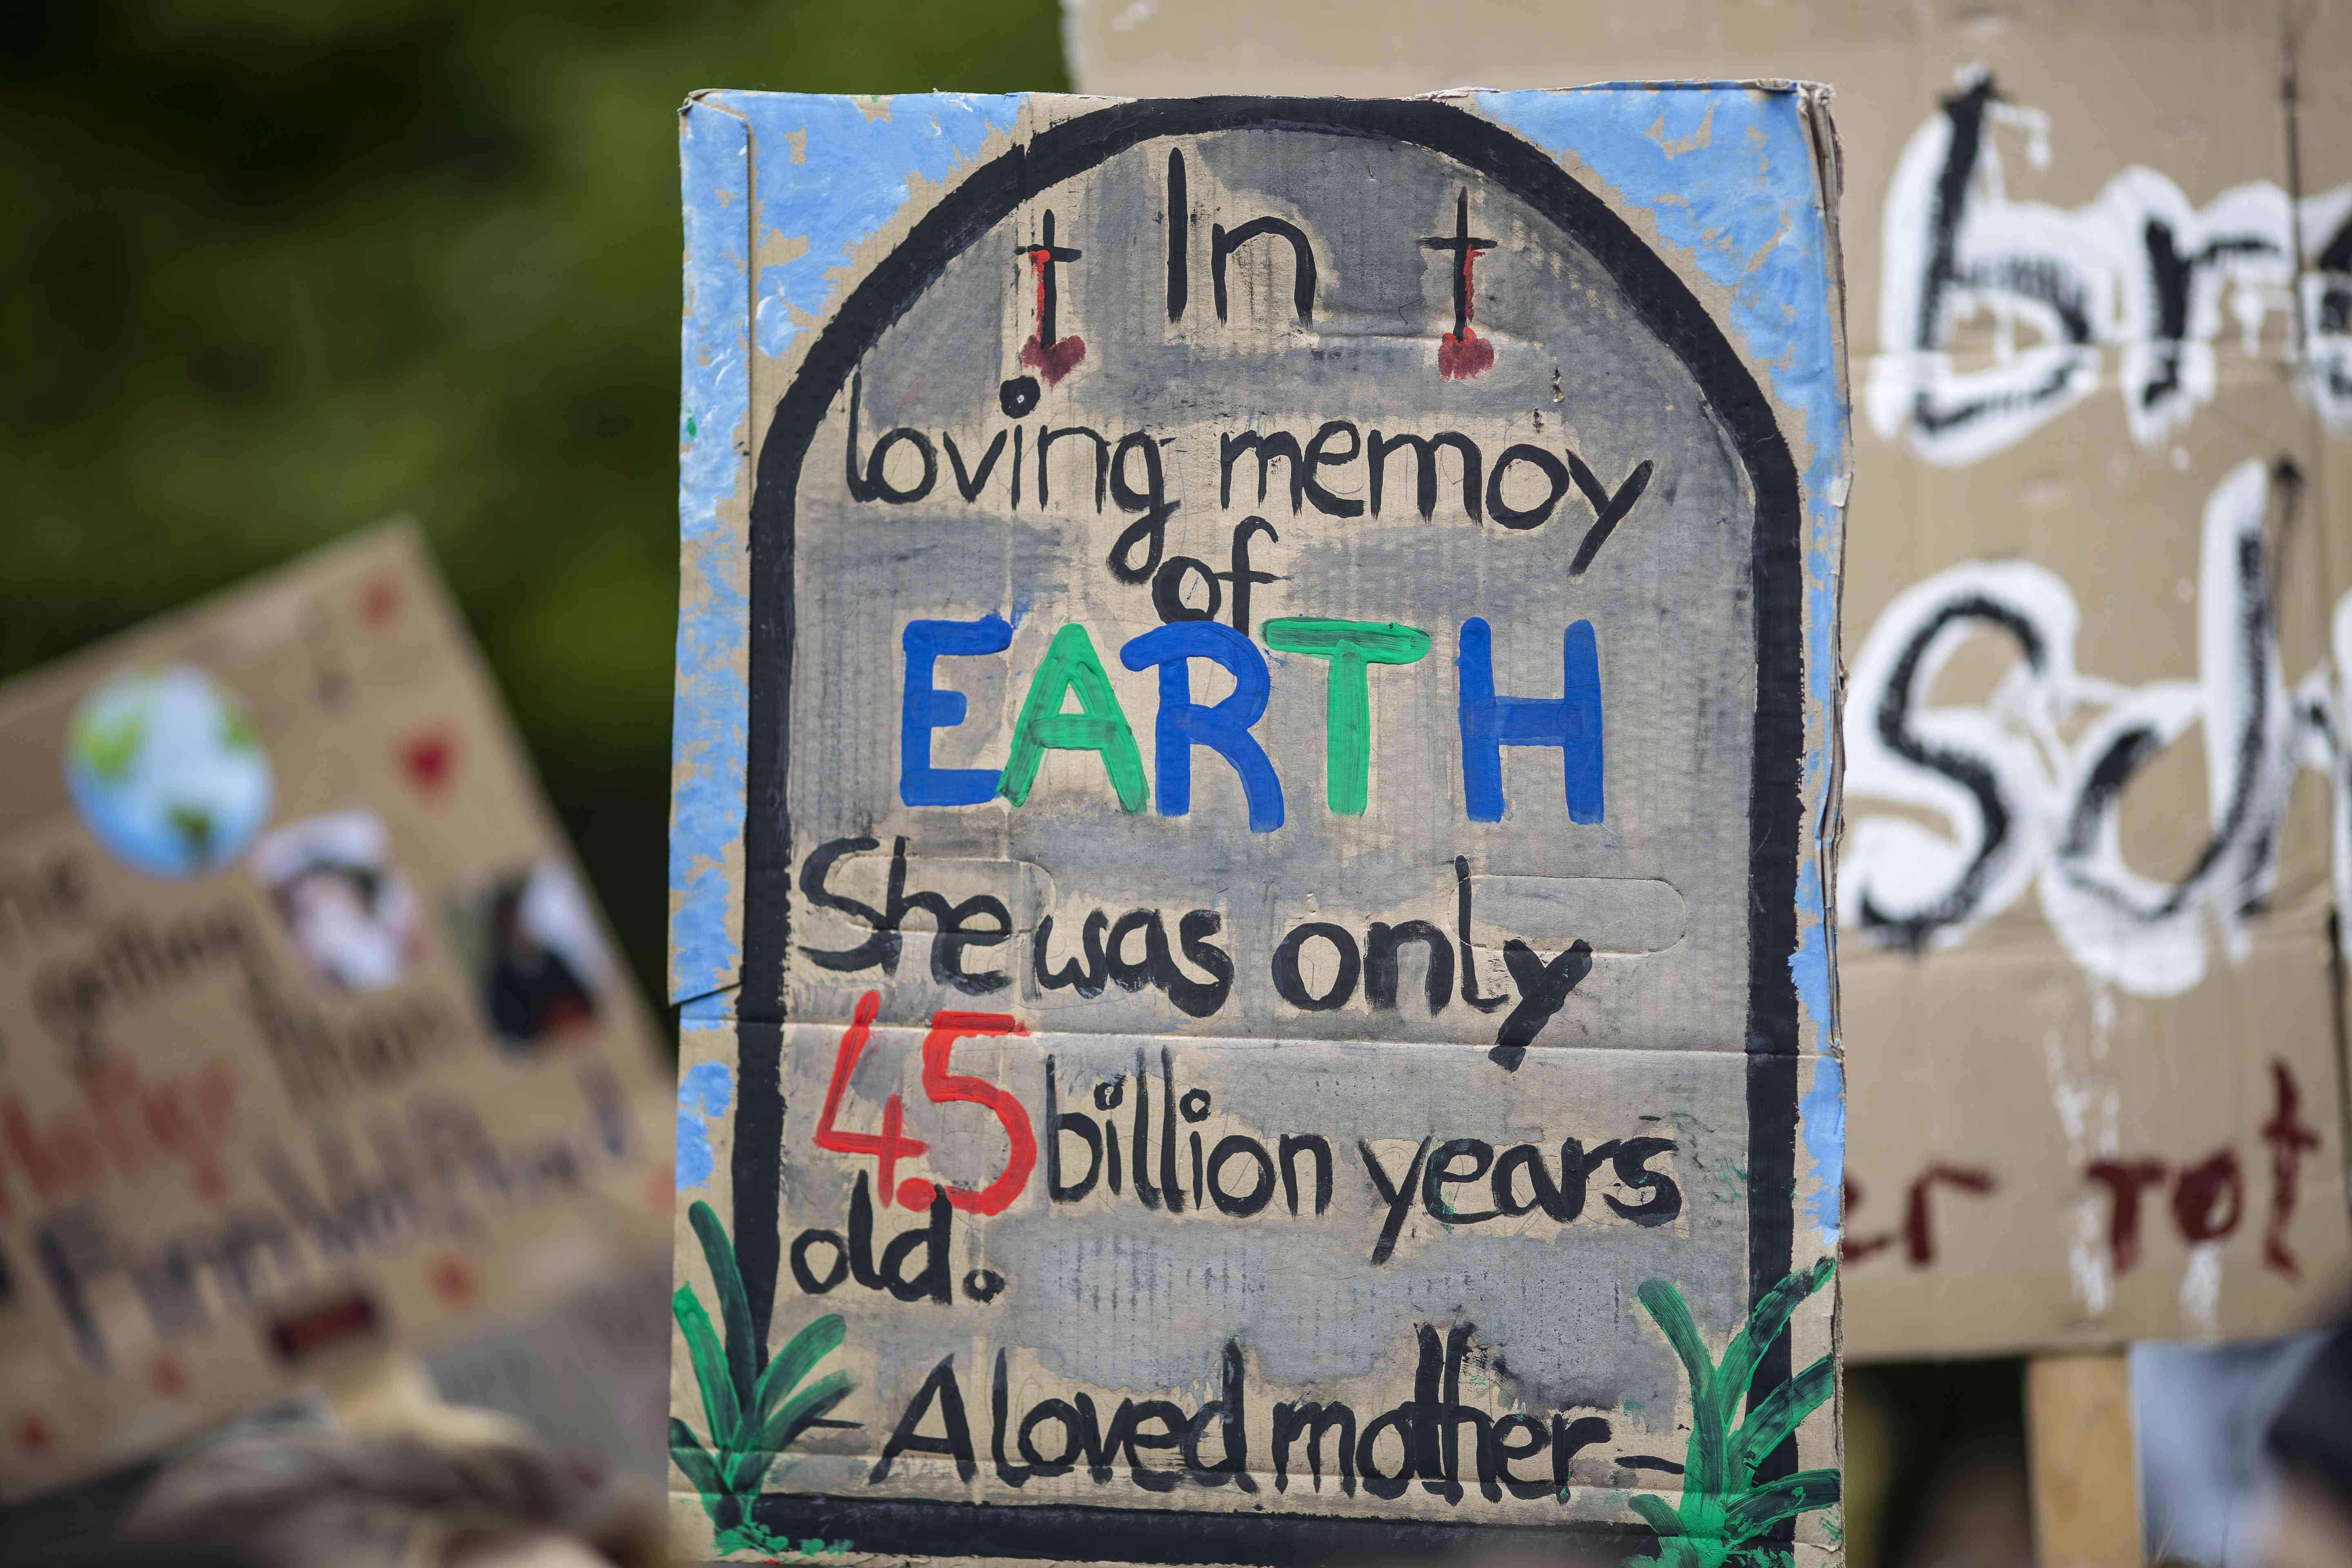 A protest sign from the Global Climate Strike on Sept 20 says: In loving memory of Earth. She was only 4.5 billion years old.